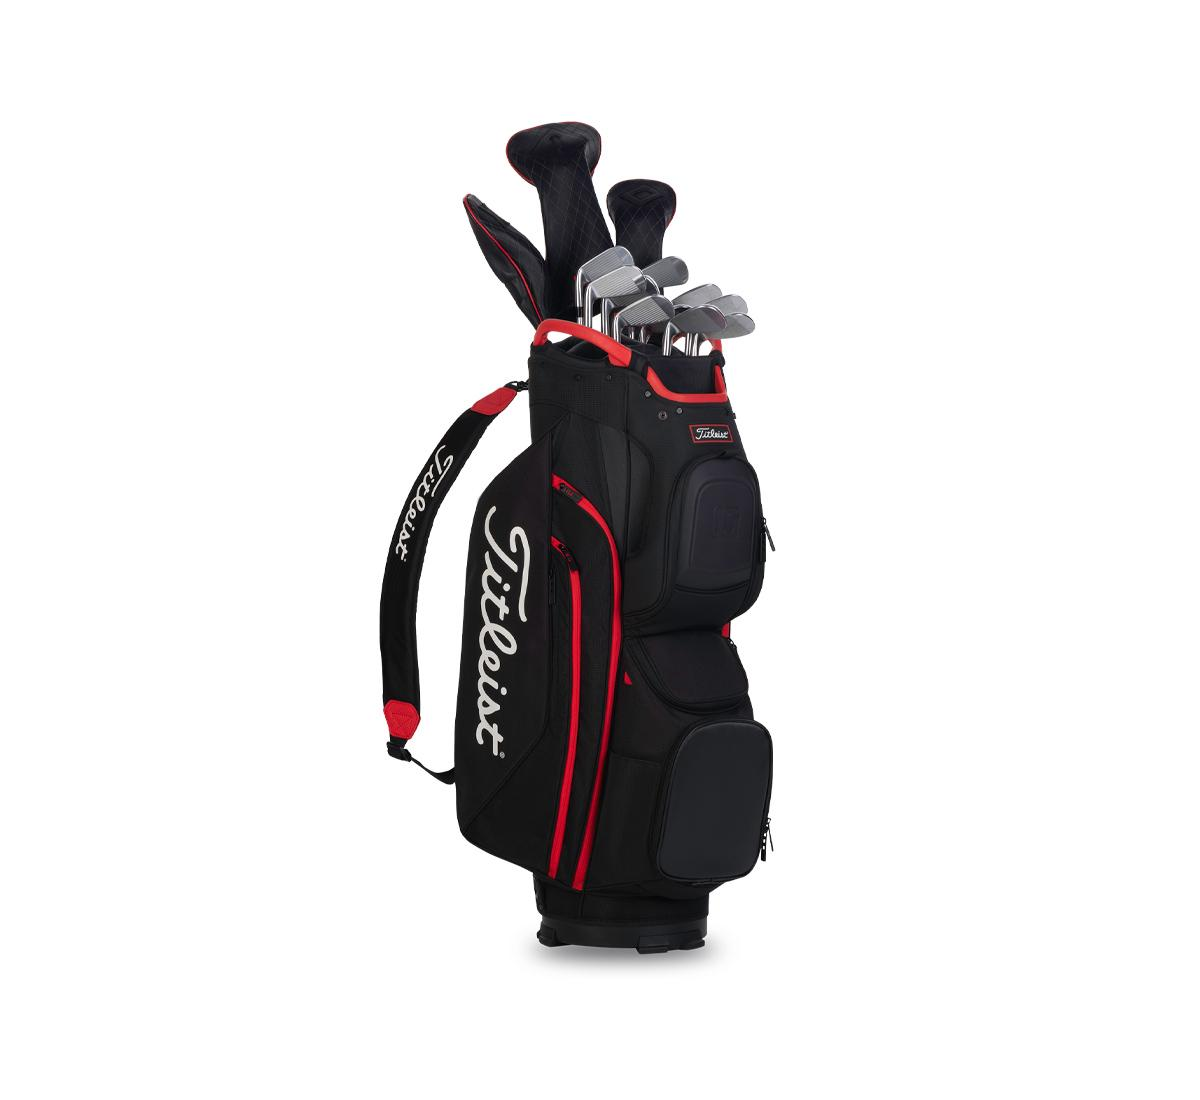 Cart 15 Golf Bag